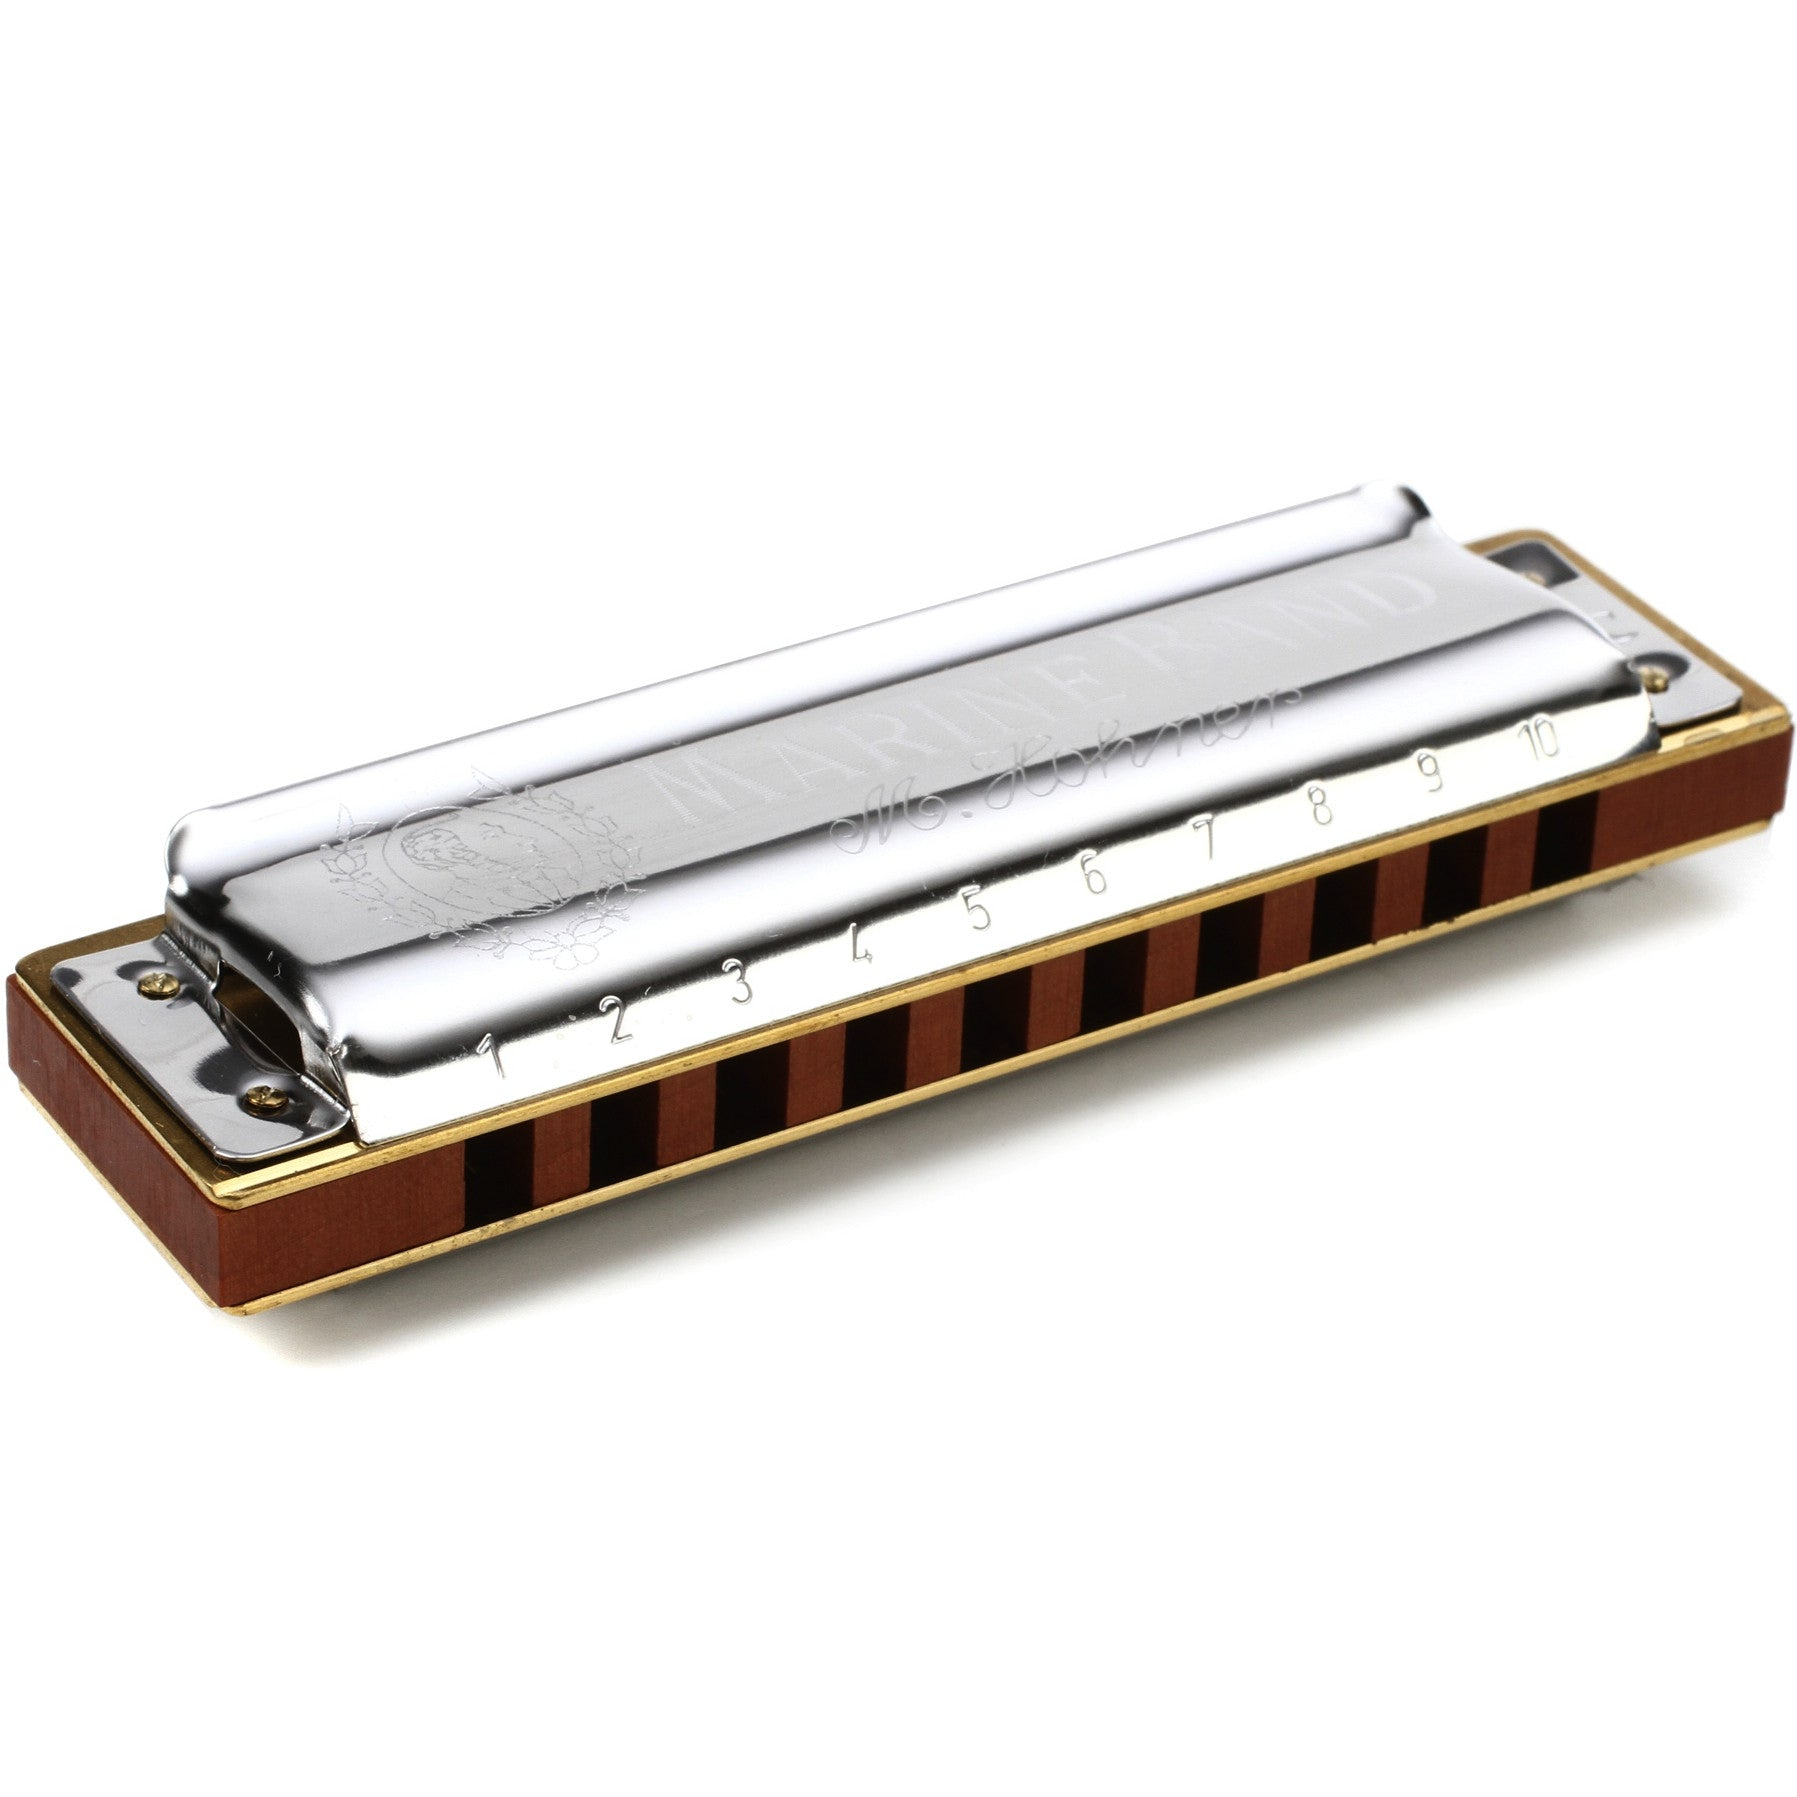 Hohner 2009 Marine Band Crossover Harmonica Key of C